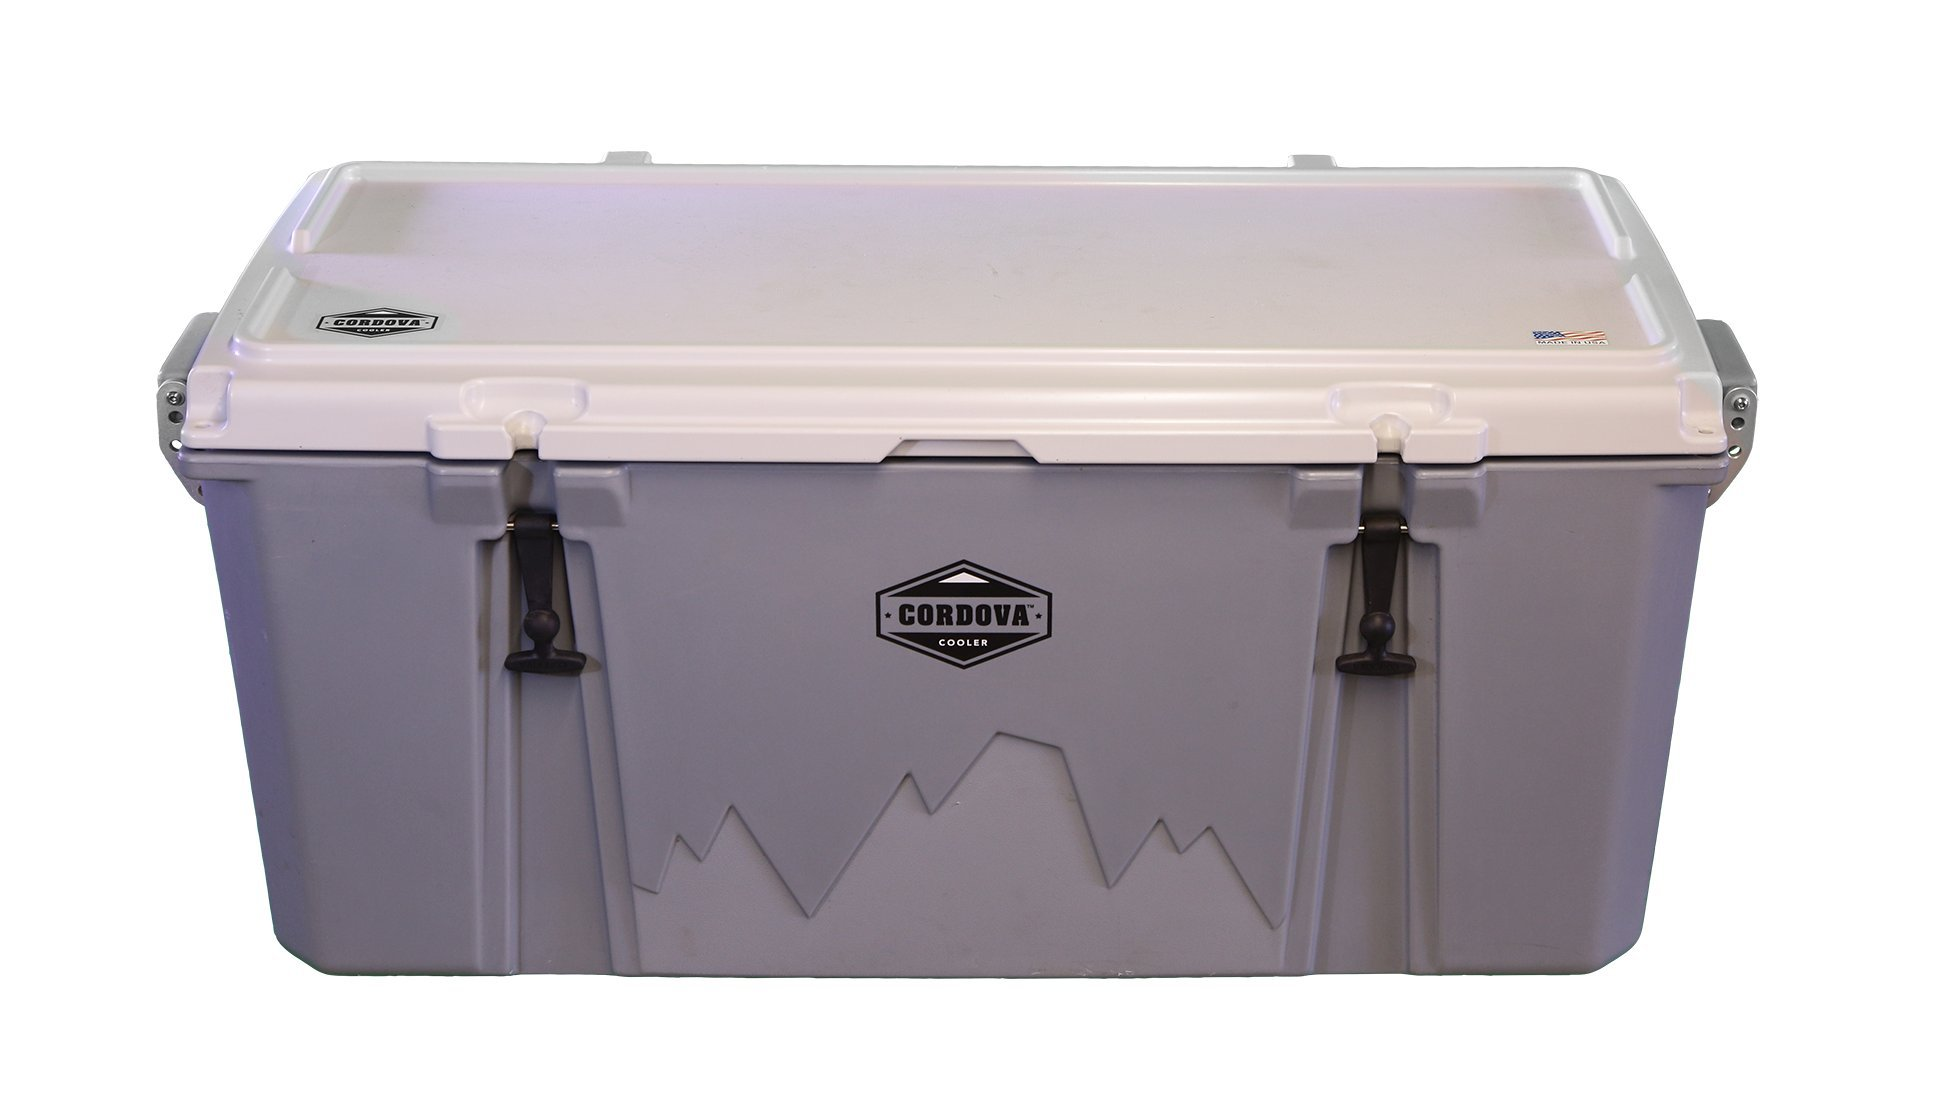 Cordova Coolers Rotomolded Gray/White Cooler with Extreme Ice Retention, up to Ten Days by Cordova Coolers